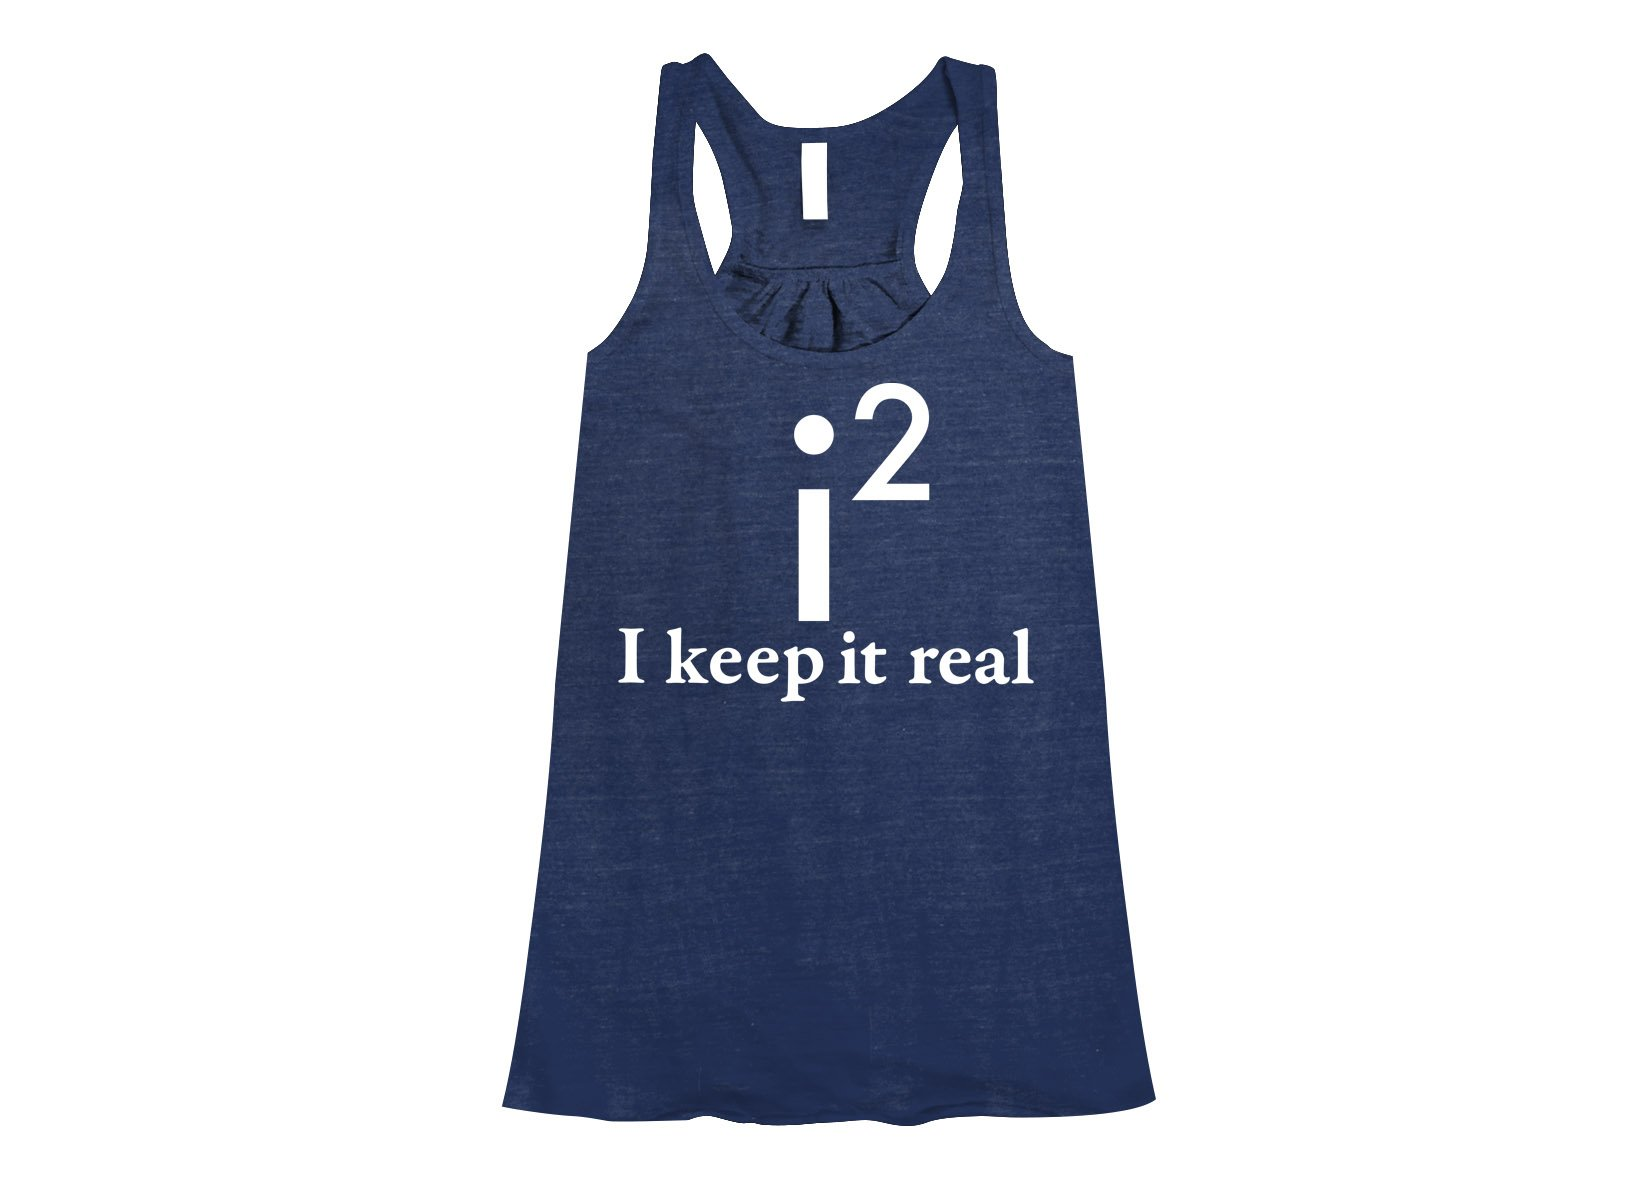 I Keep It Real on Womens Tanks T-Shirt